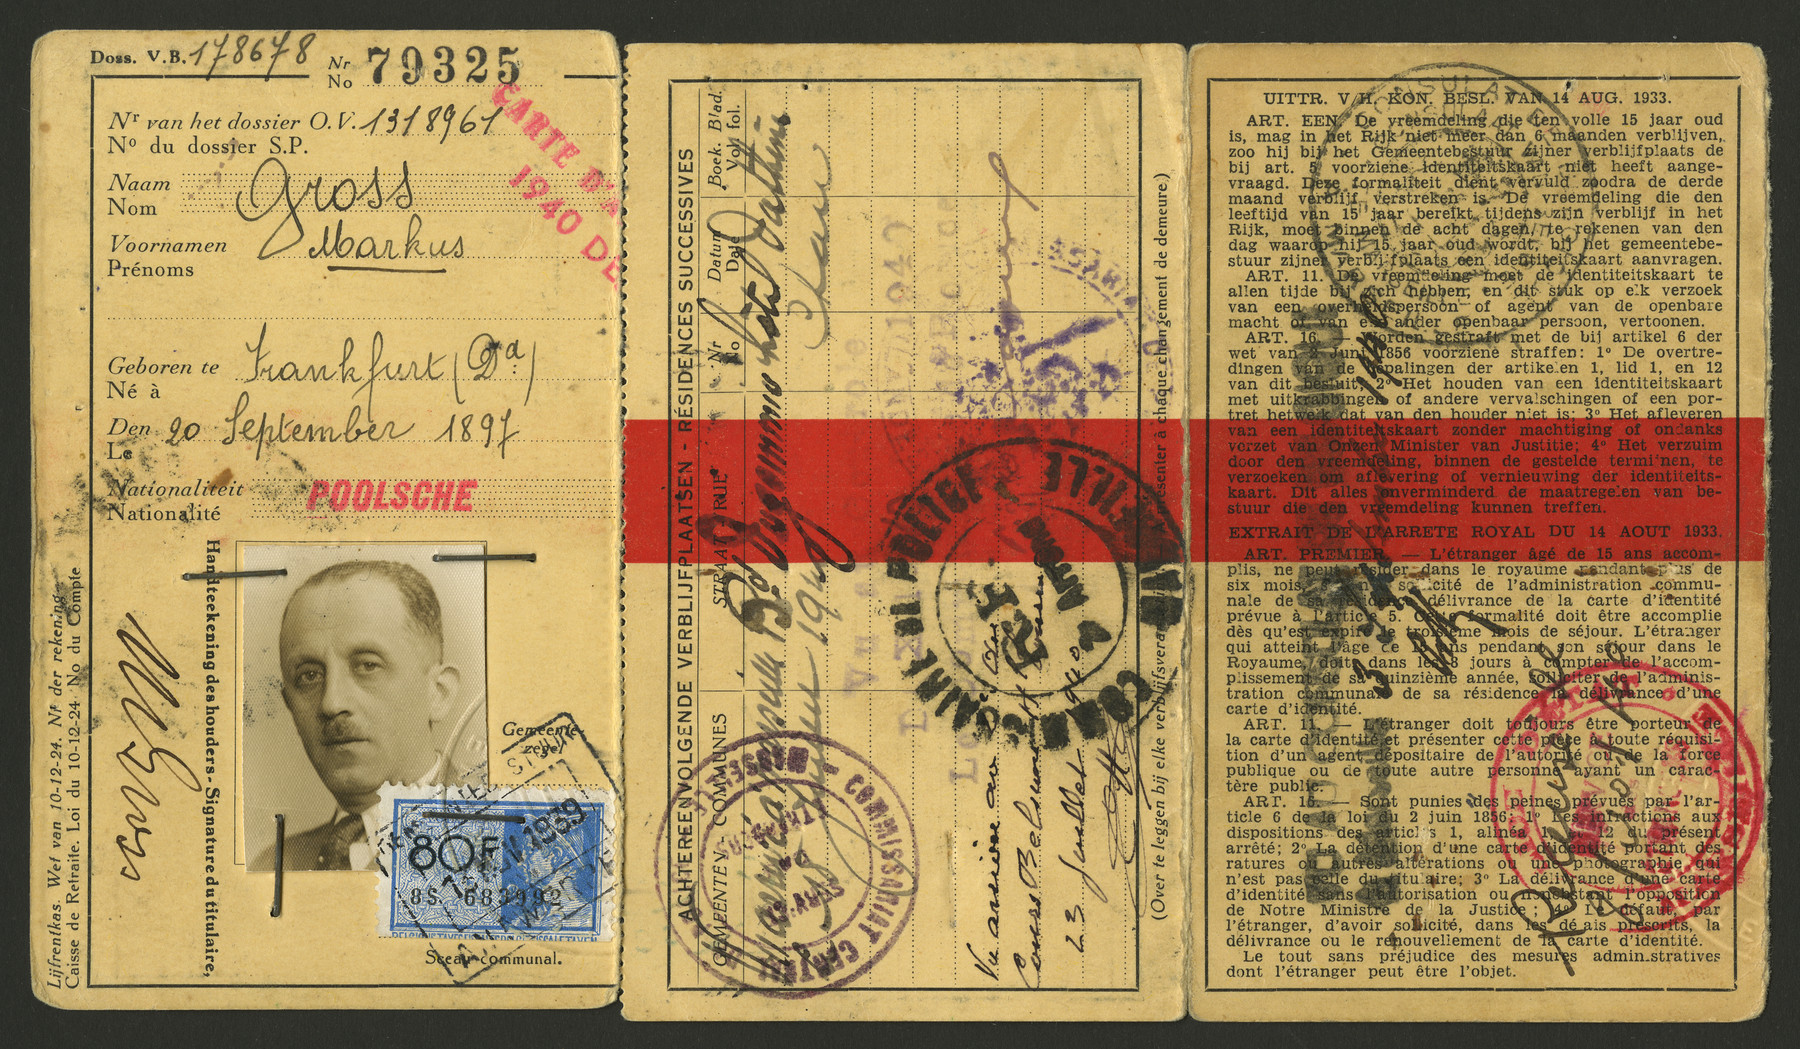 Max Gross's Belgian passport.